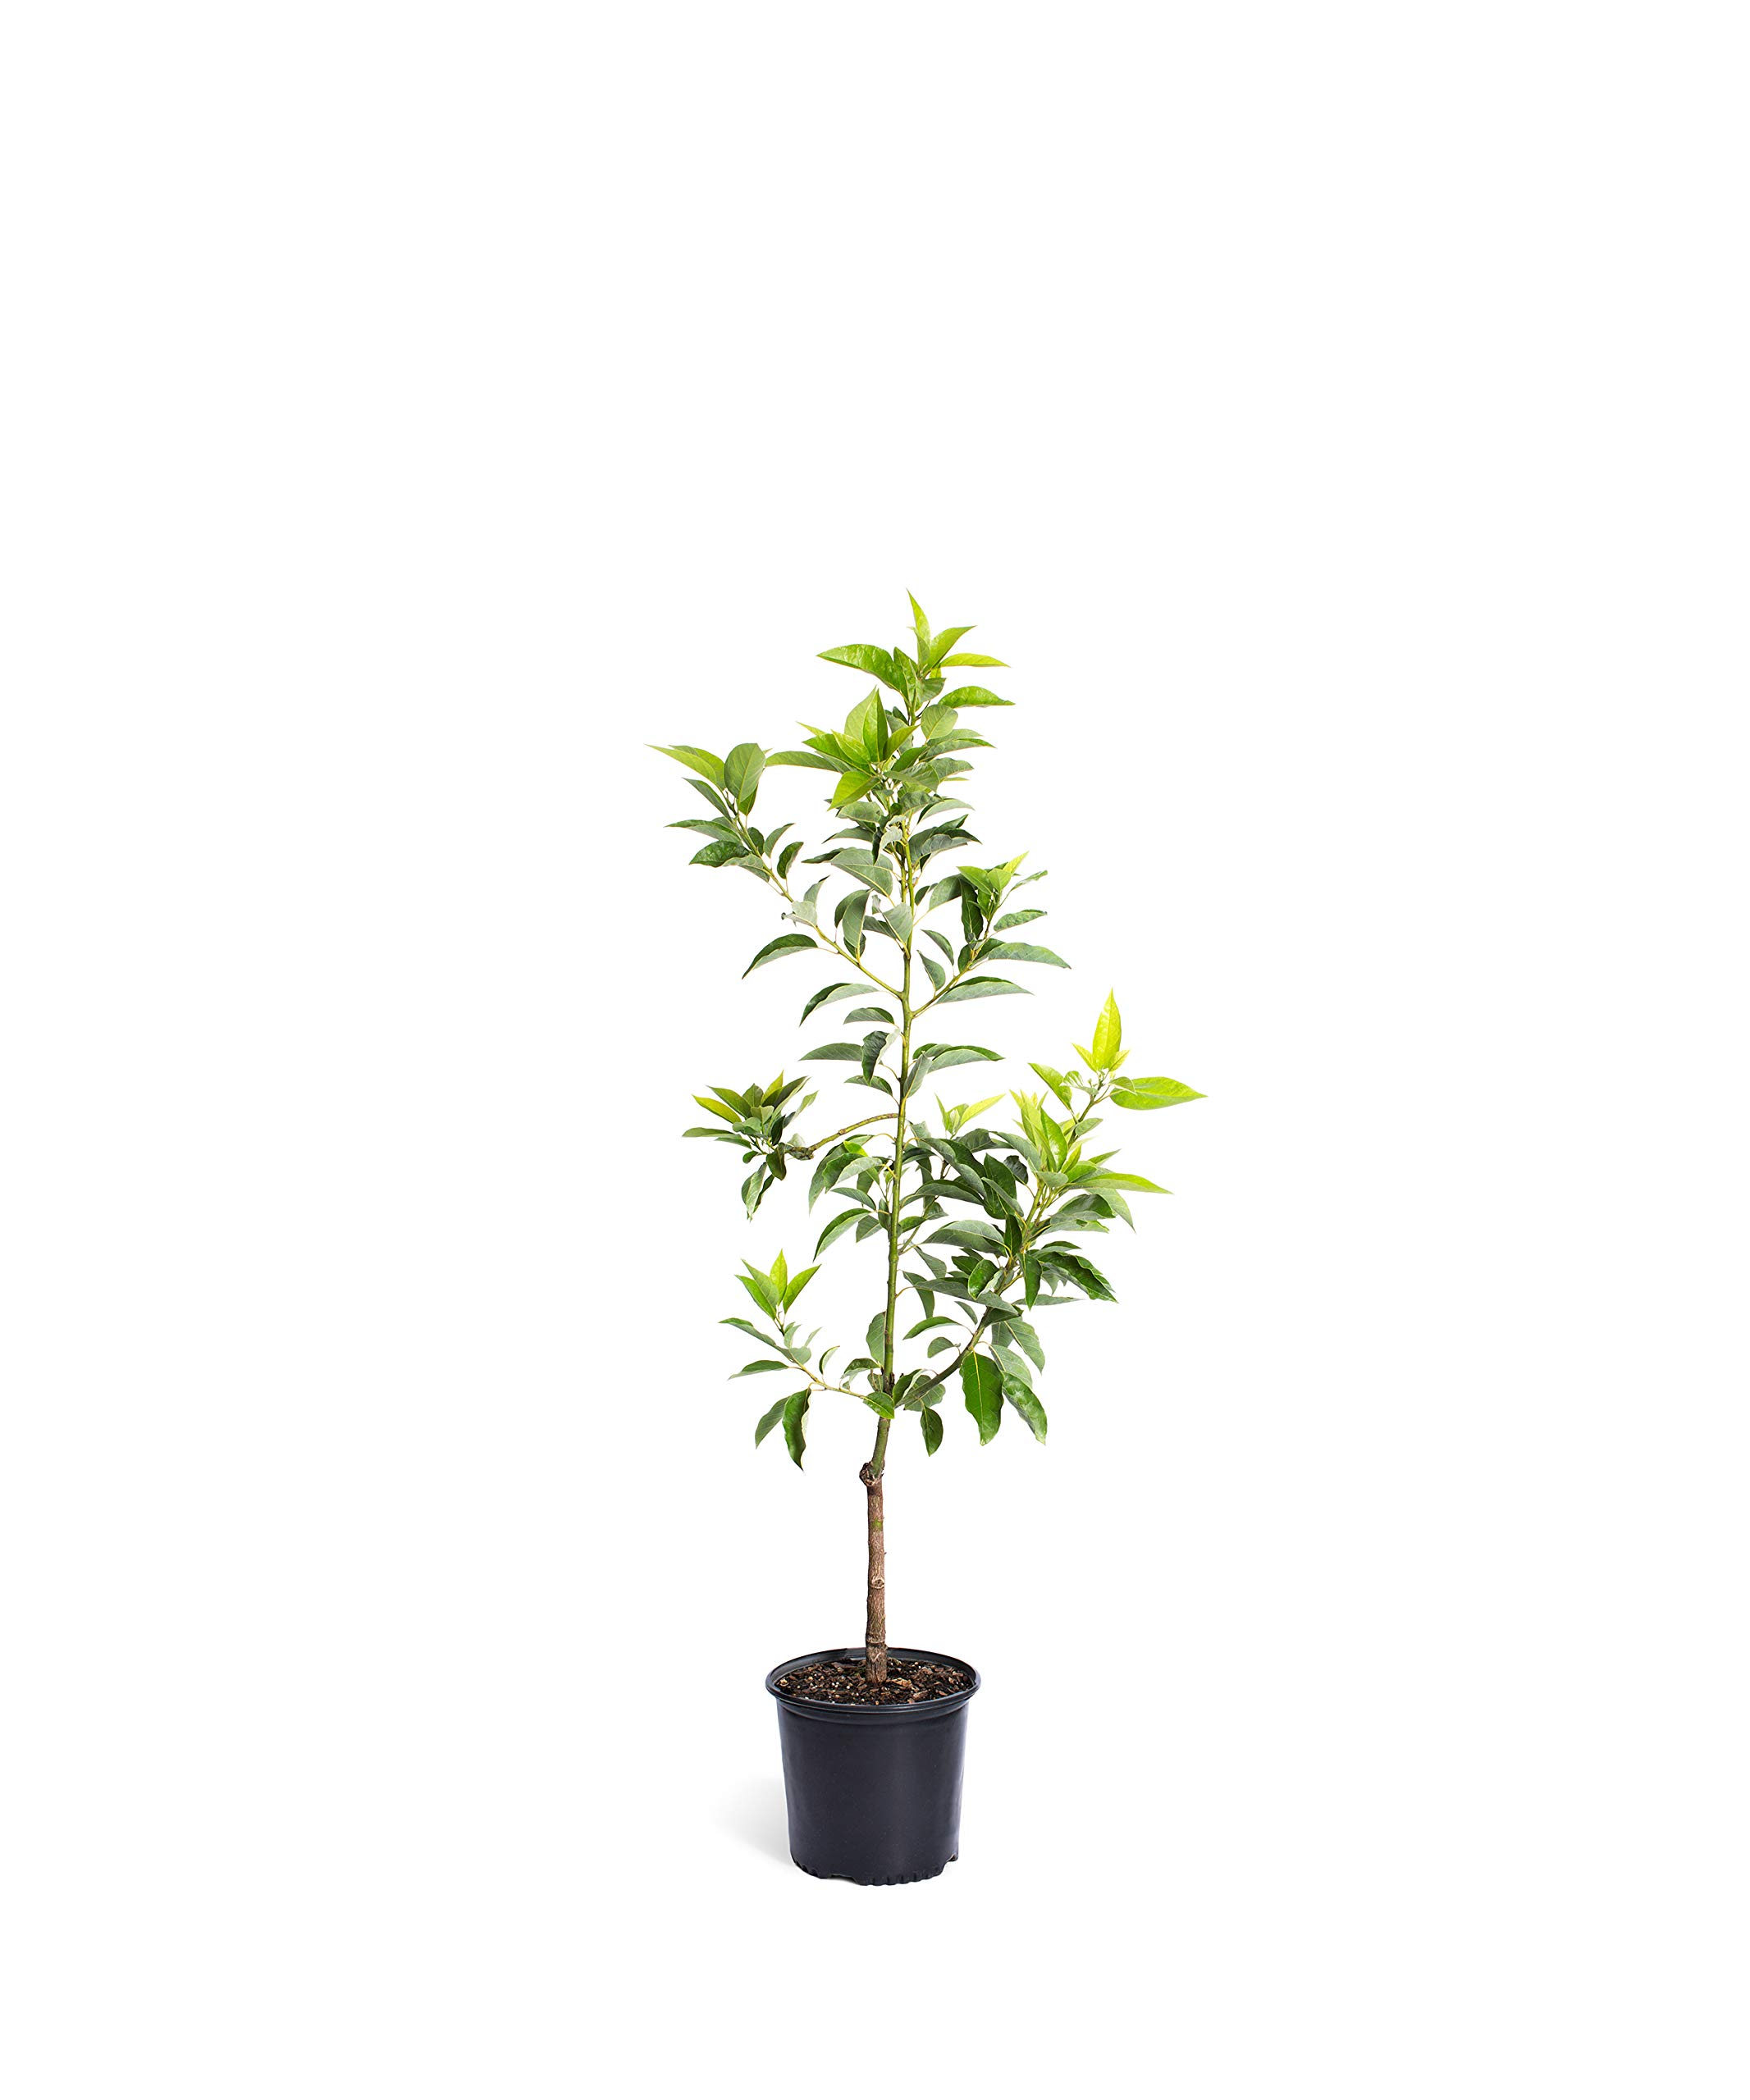 Cold Hardy Avocado Tree - (Mexicola Grande) - Get Delicious Avocados Year Round from This Fruit Tree by Brighter Blooms Nursery - 3-4 ft. | NO Shipping to Arizona